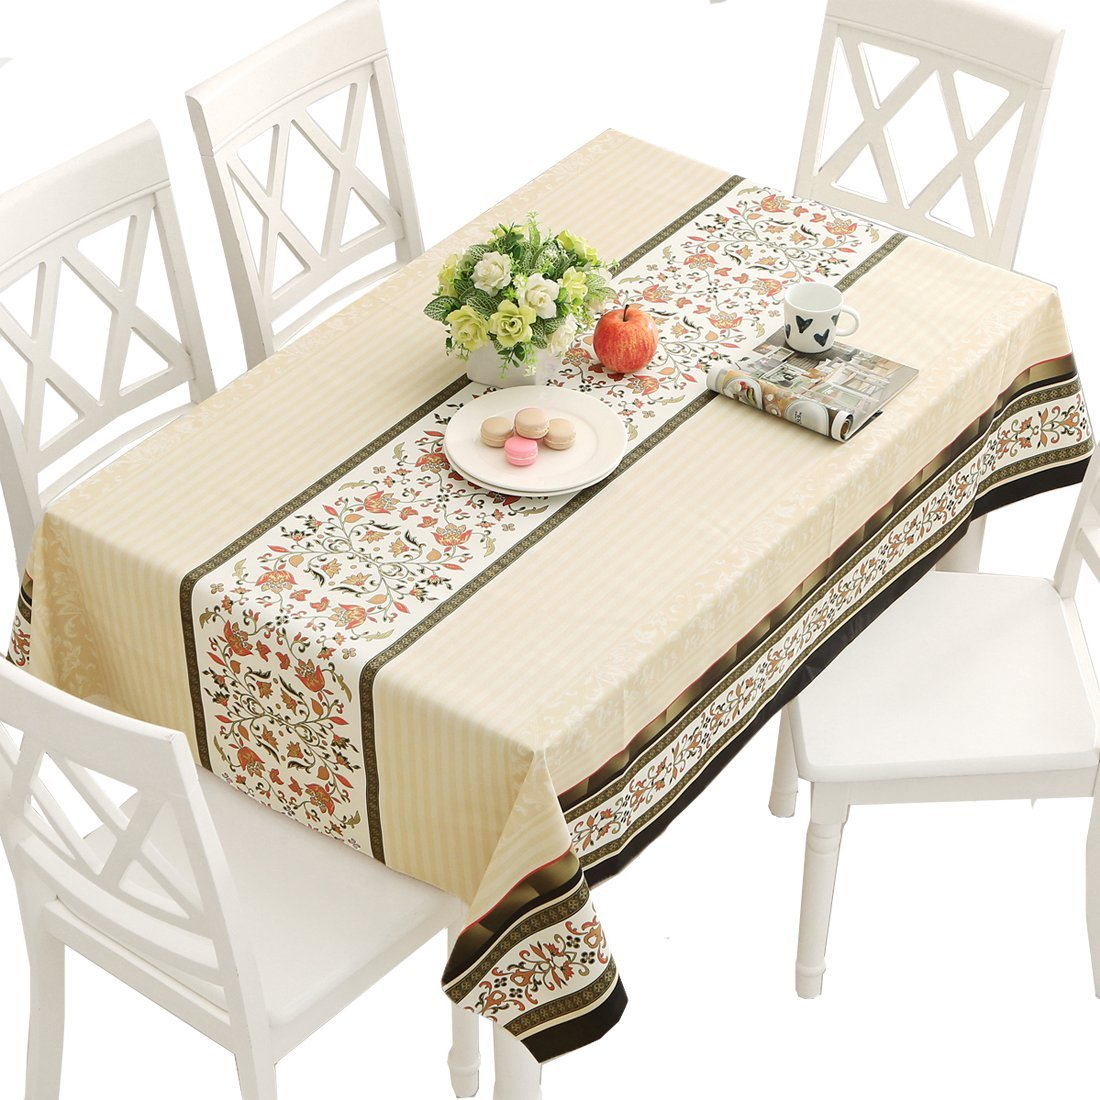 DUOFIRE Vinyl Tablecloth Rectangle Heavy Weight Table Cover Wipe Clean Waterproof (54 x 78.7 Inch, Color-No.015)